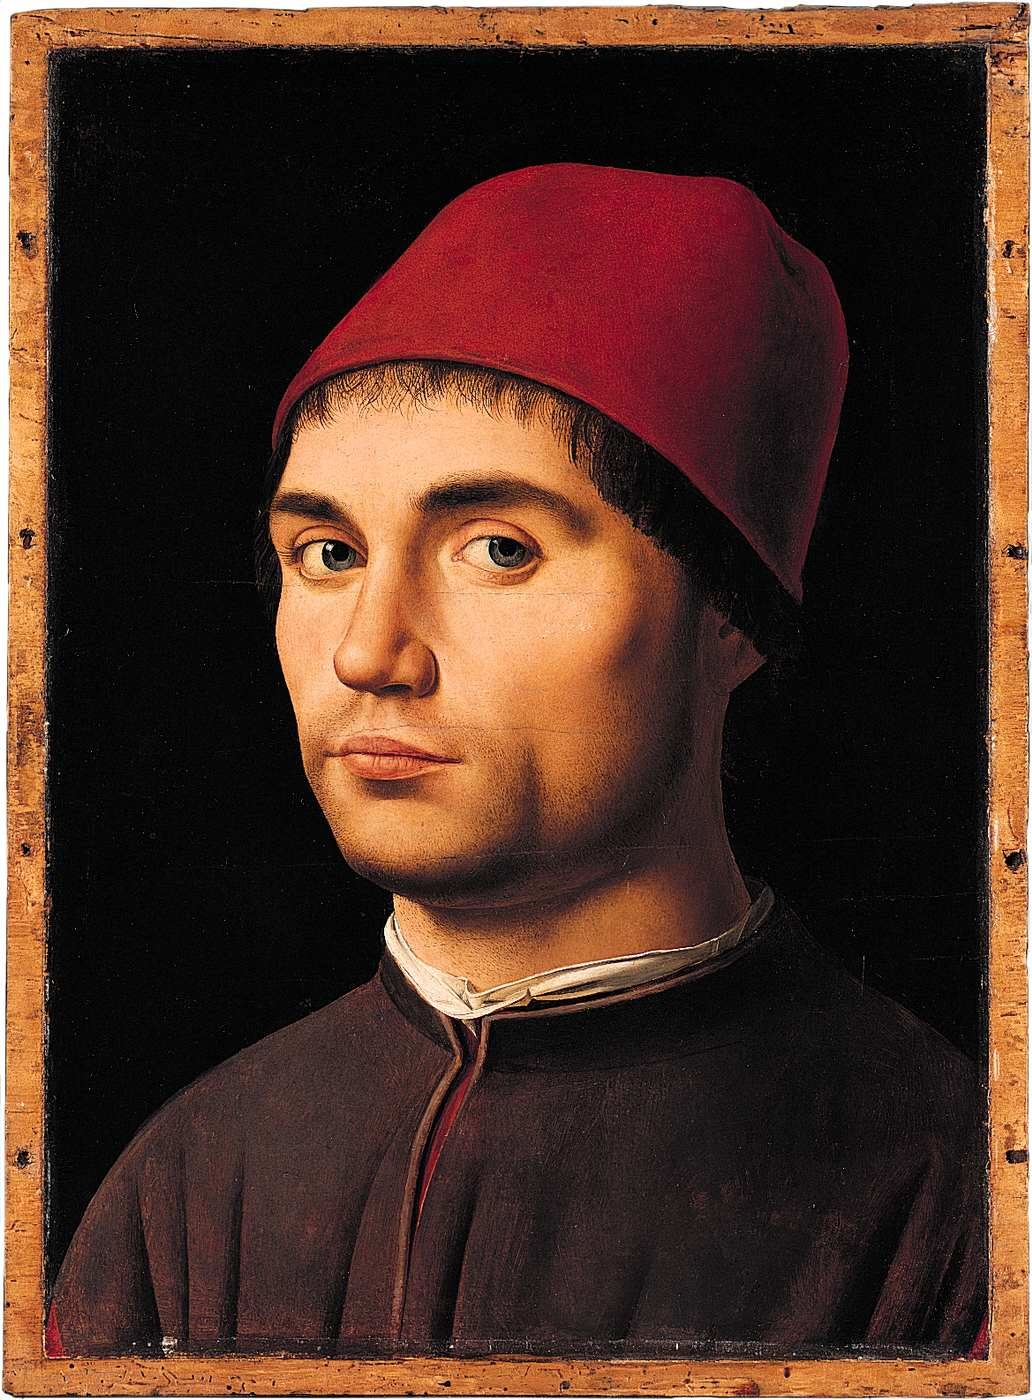 Exceptionnel Portrait of a Man - Antonello da Messina - Gallery - Web gallery  NW96